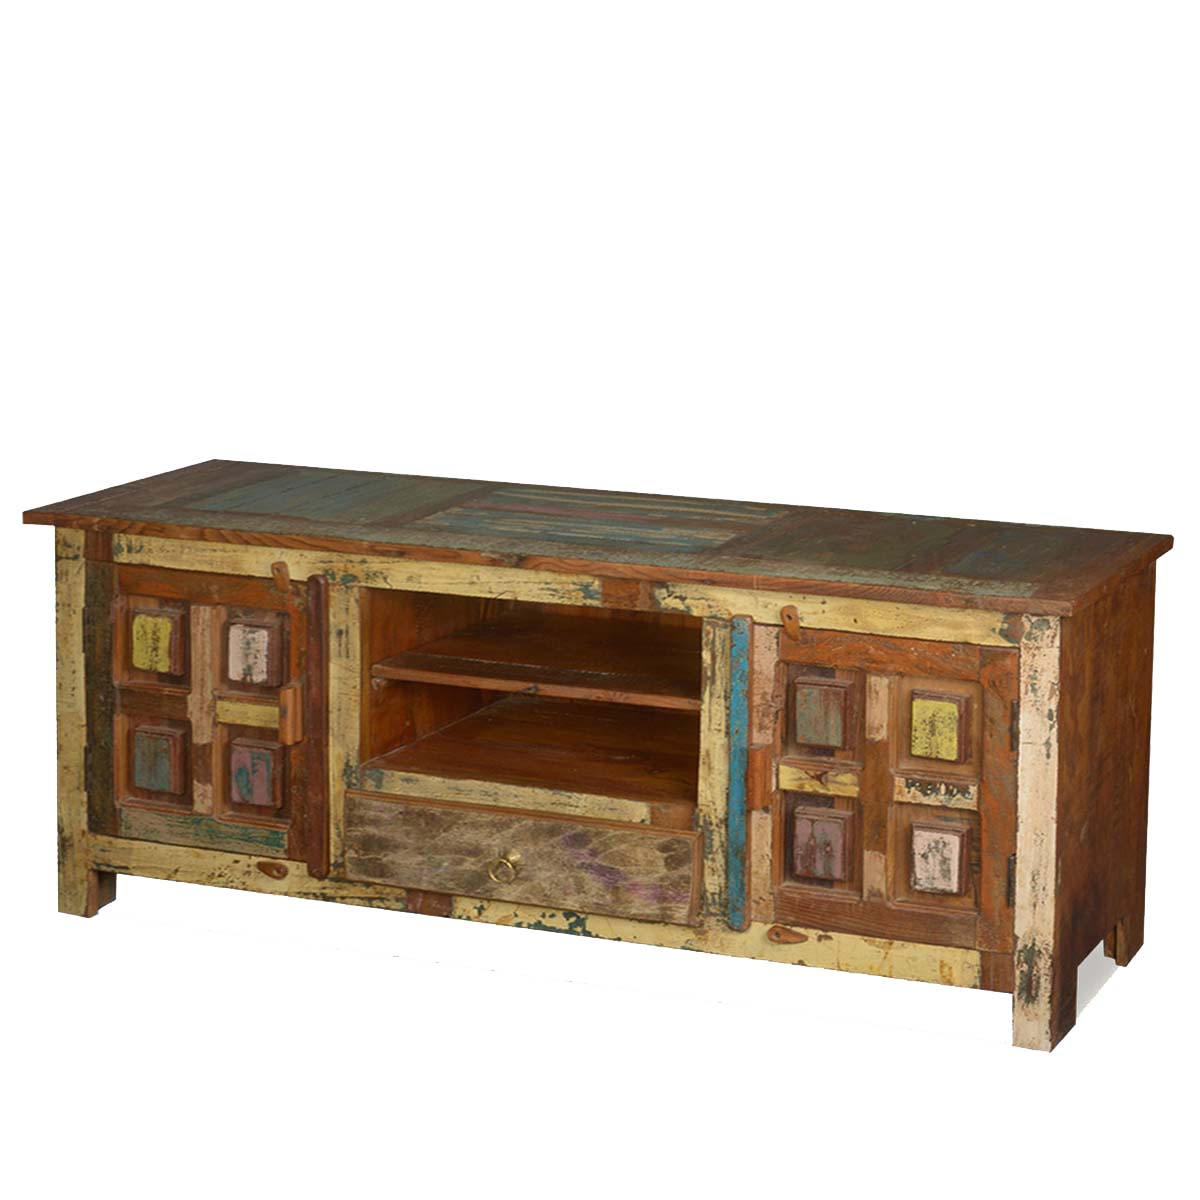 Well Known Cheap Rustic Tv Stands With Rustic Tv Stand With Casters Walmart X Plans Diy Barn Doors Country (View 20 of 20)